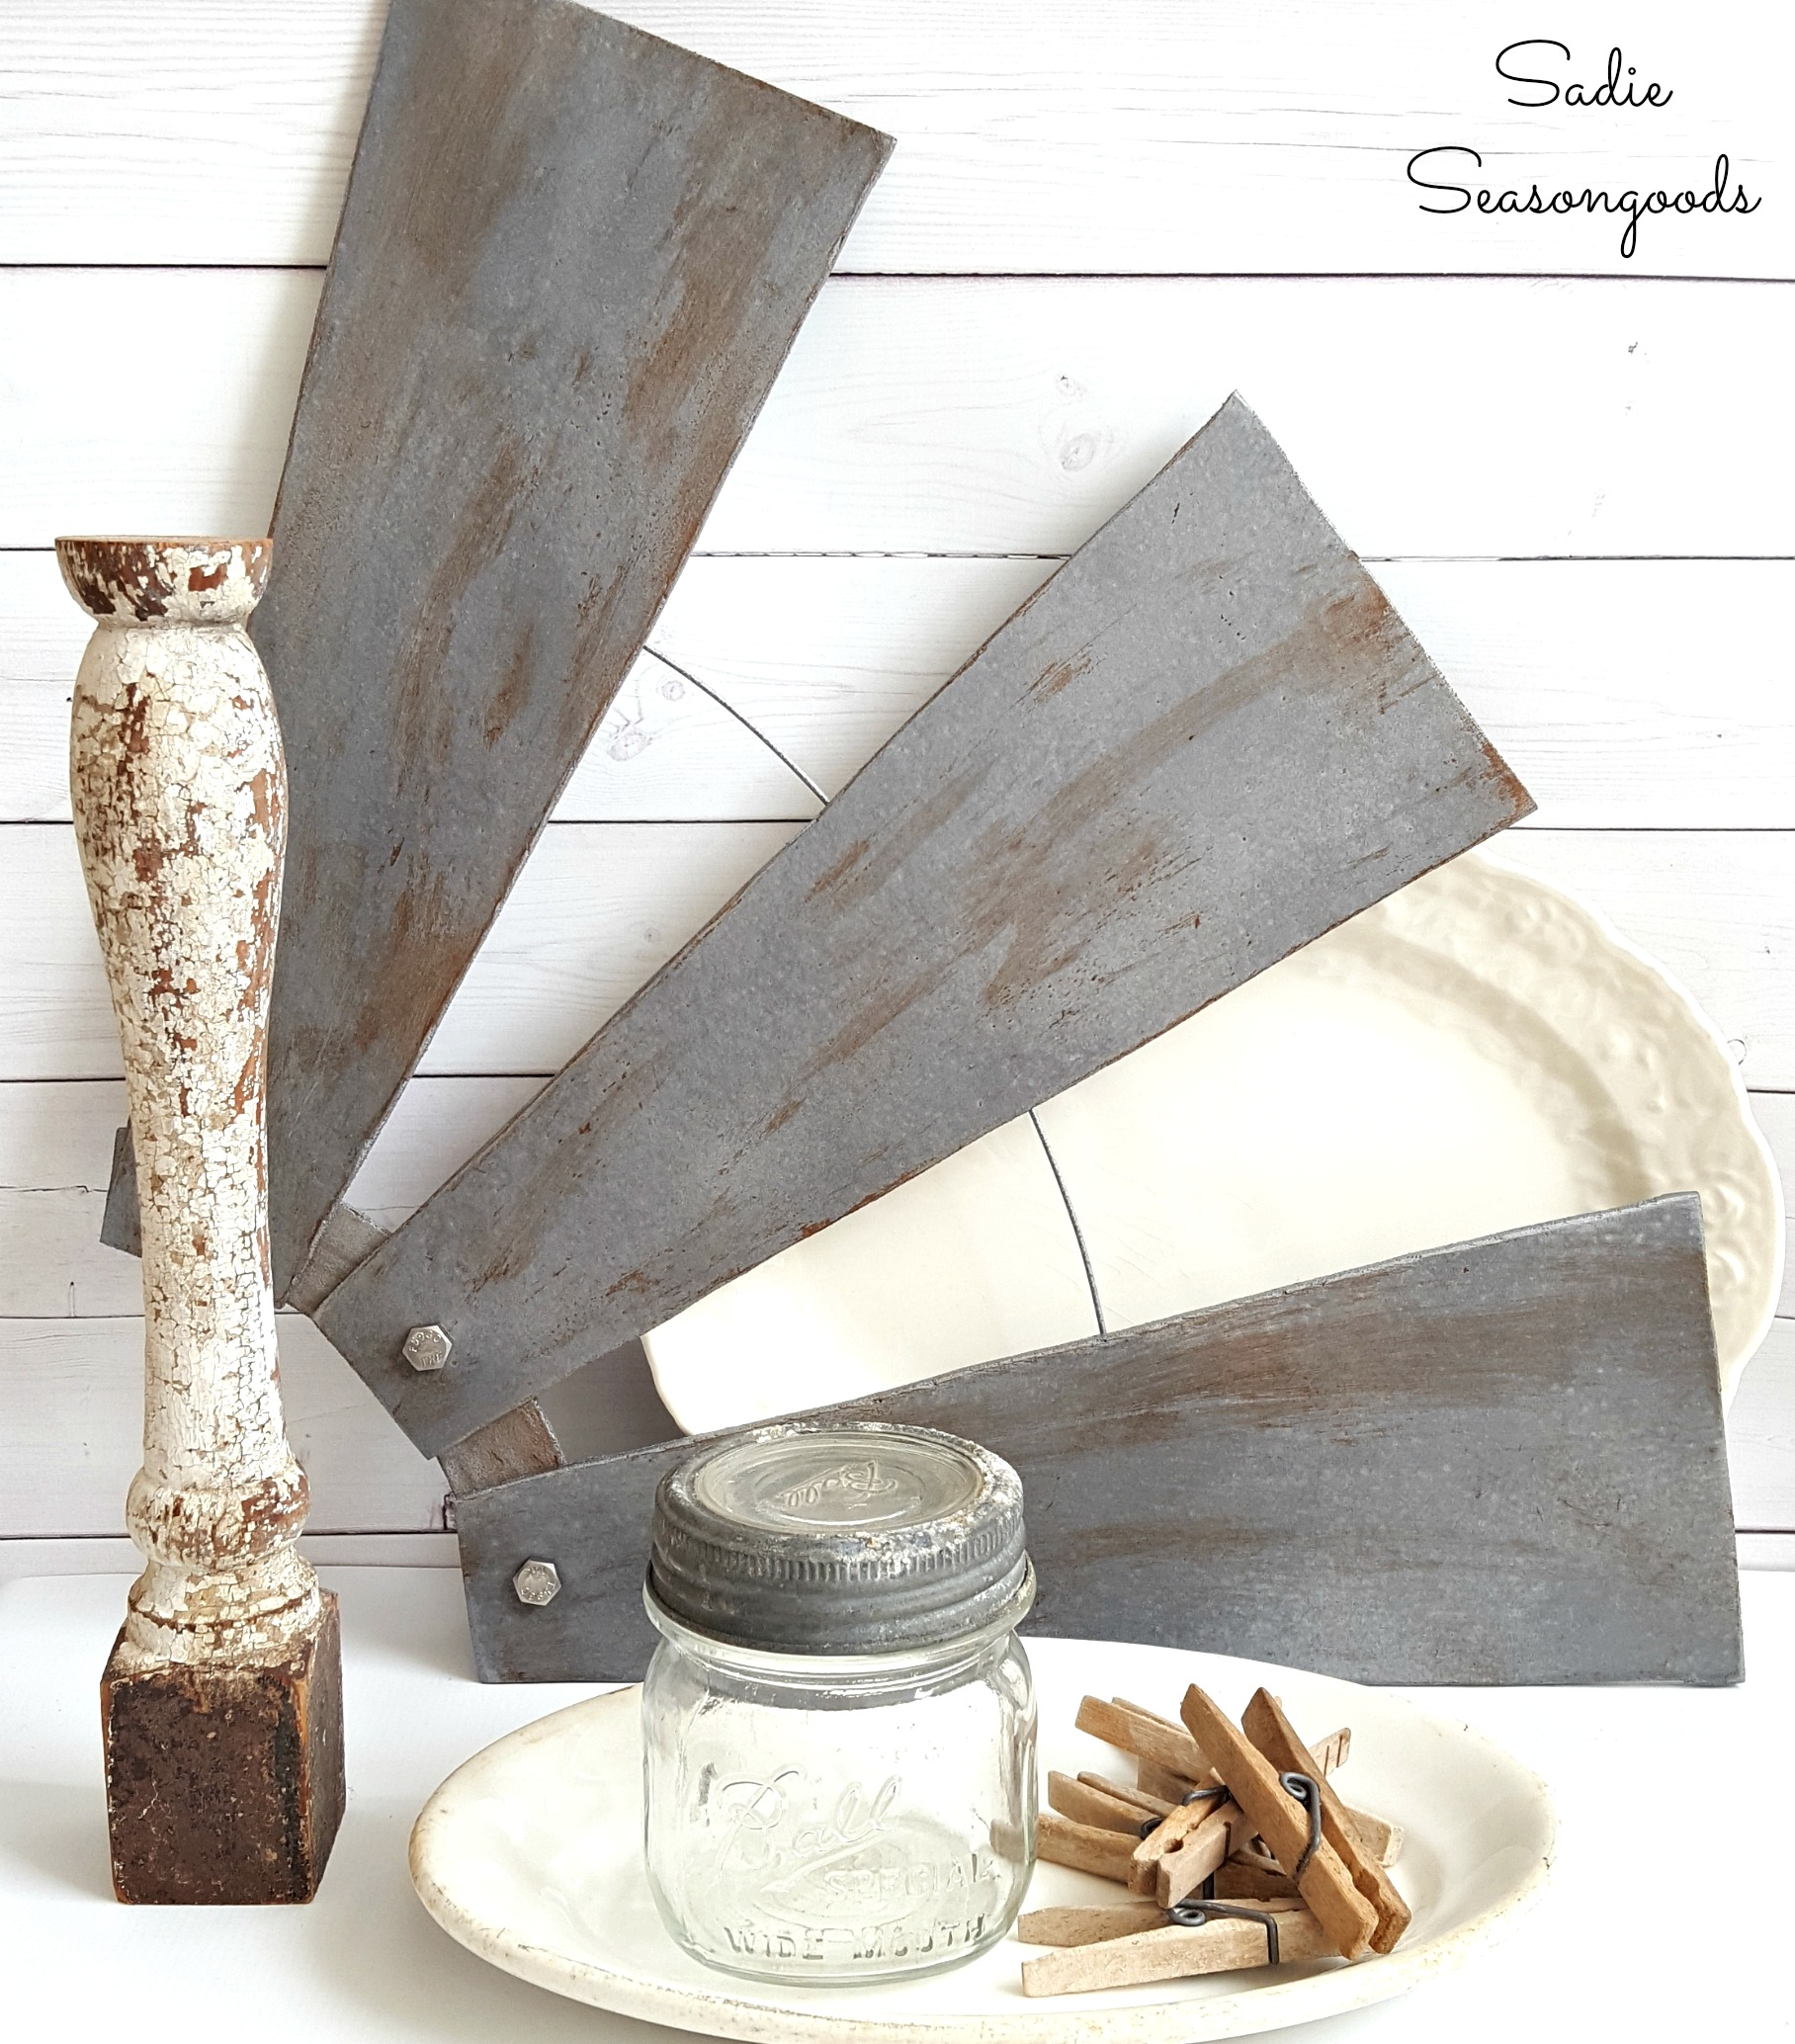 Repurposed ceiling fan windmill blades, by Sadie Seasongoods, featured on Funky Junk Interiors